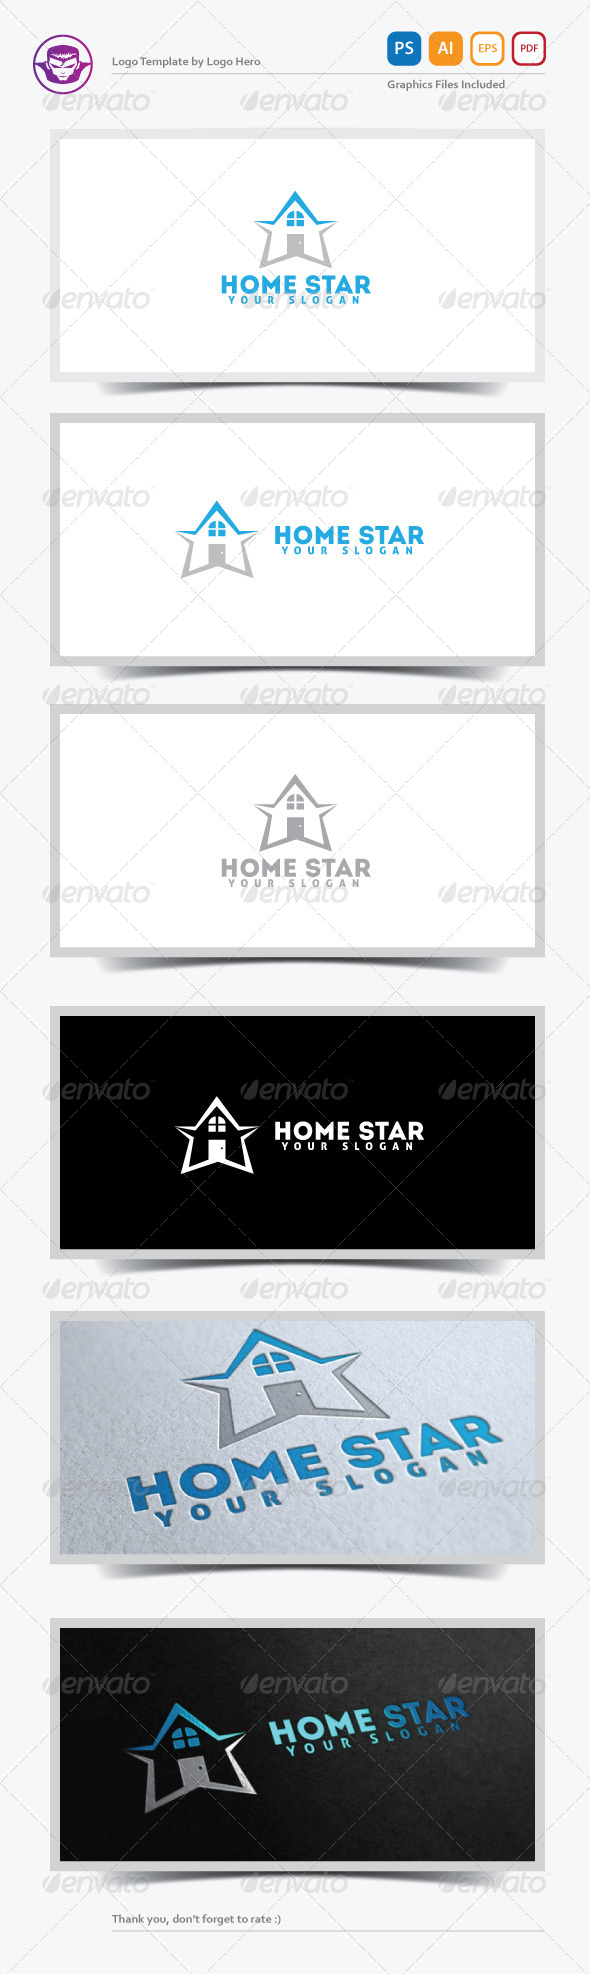 GraphicRiver Home Star Logo Template 5225590